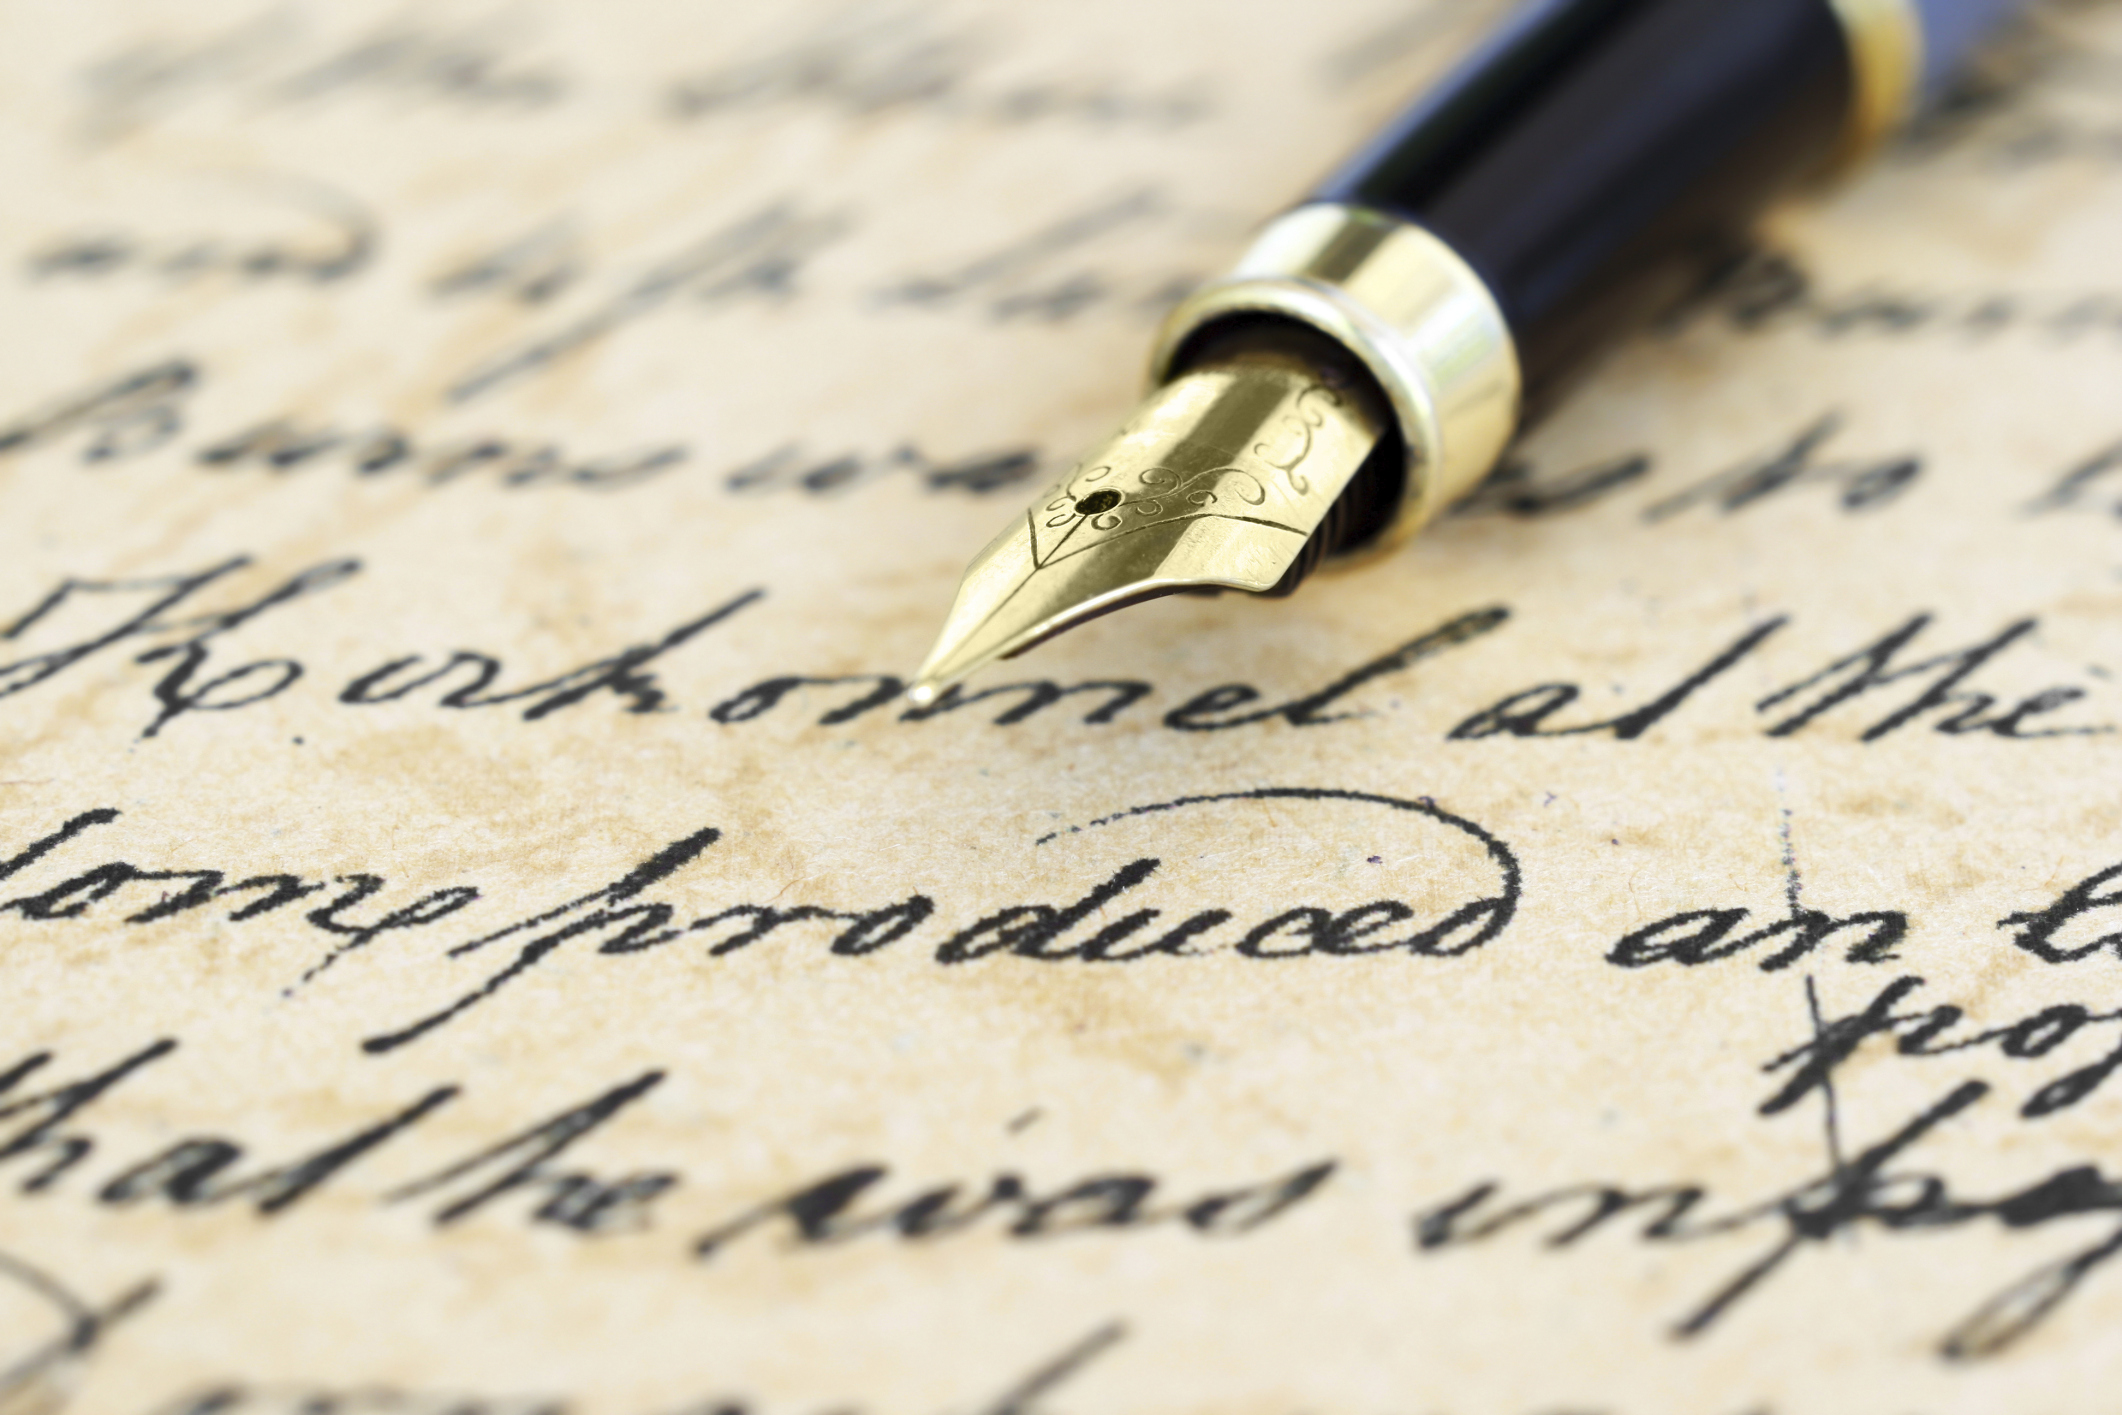 Writing a book, paper & pen or word?